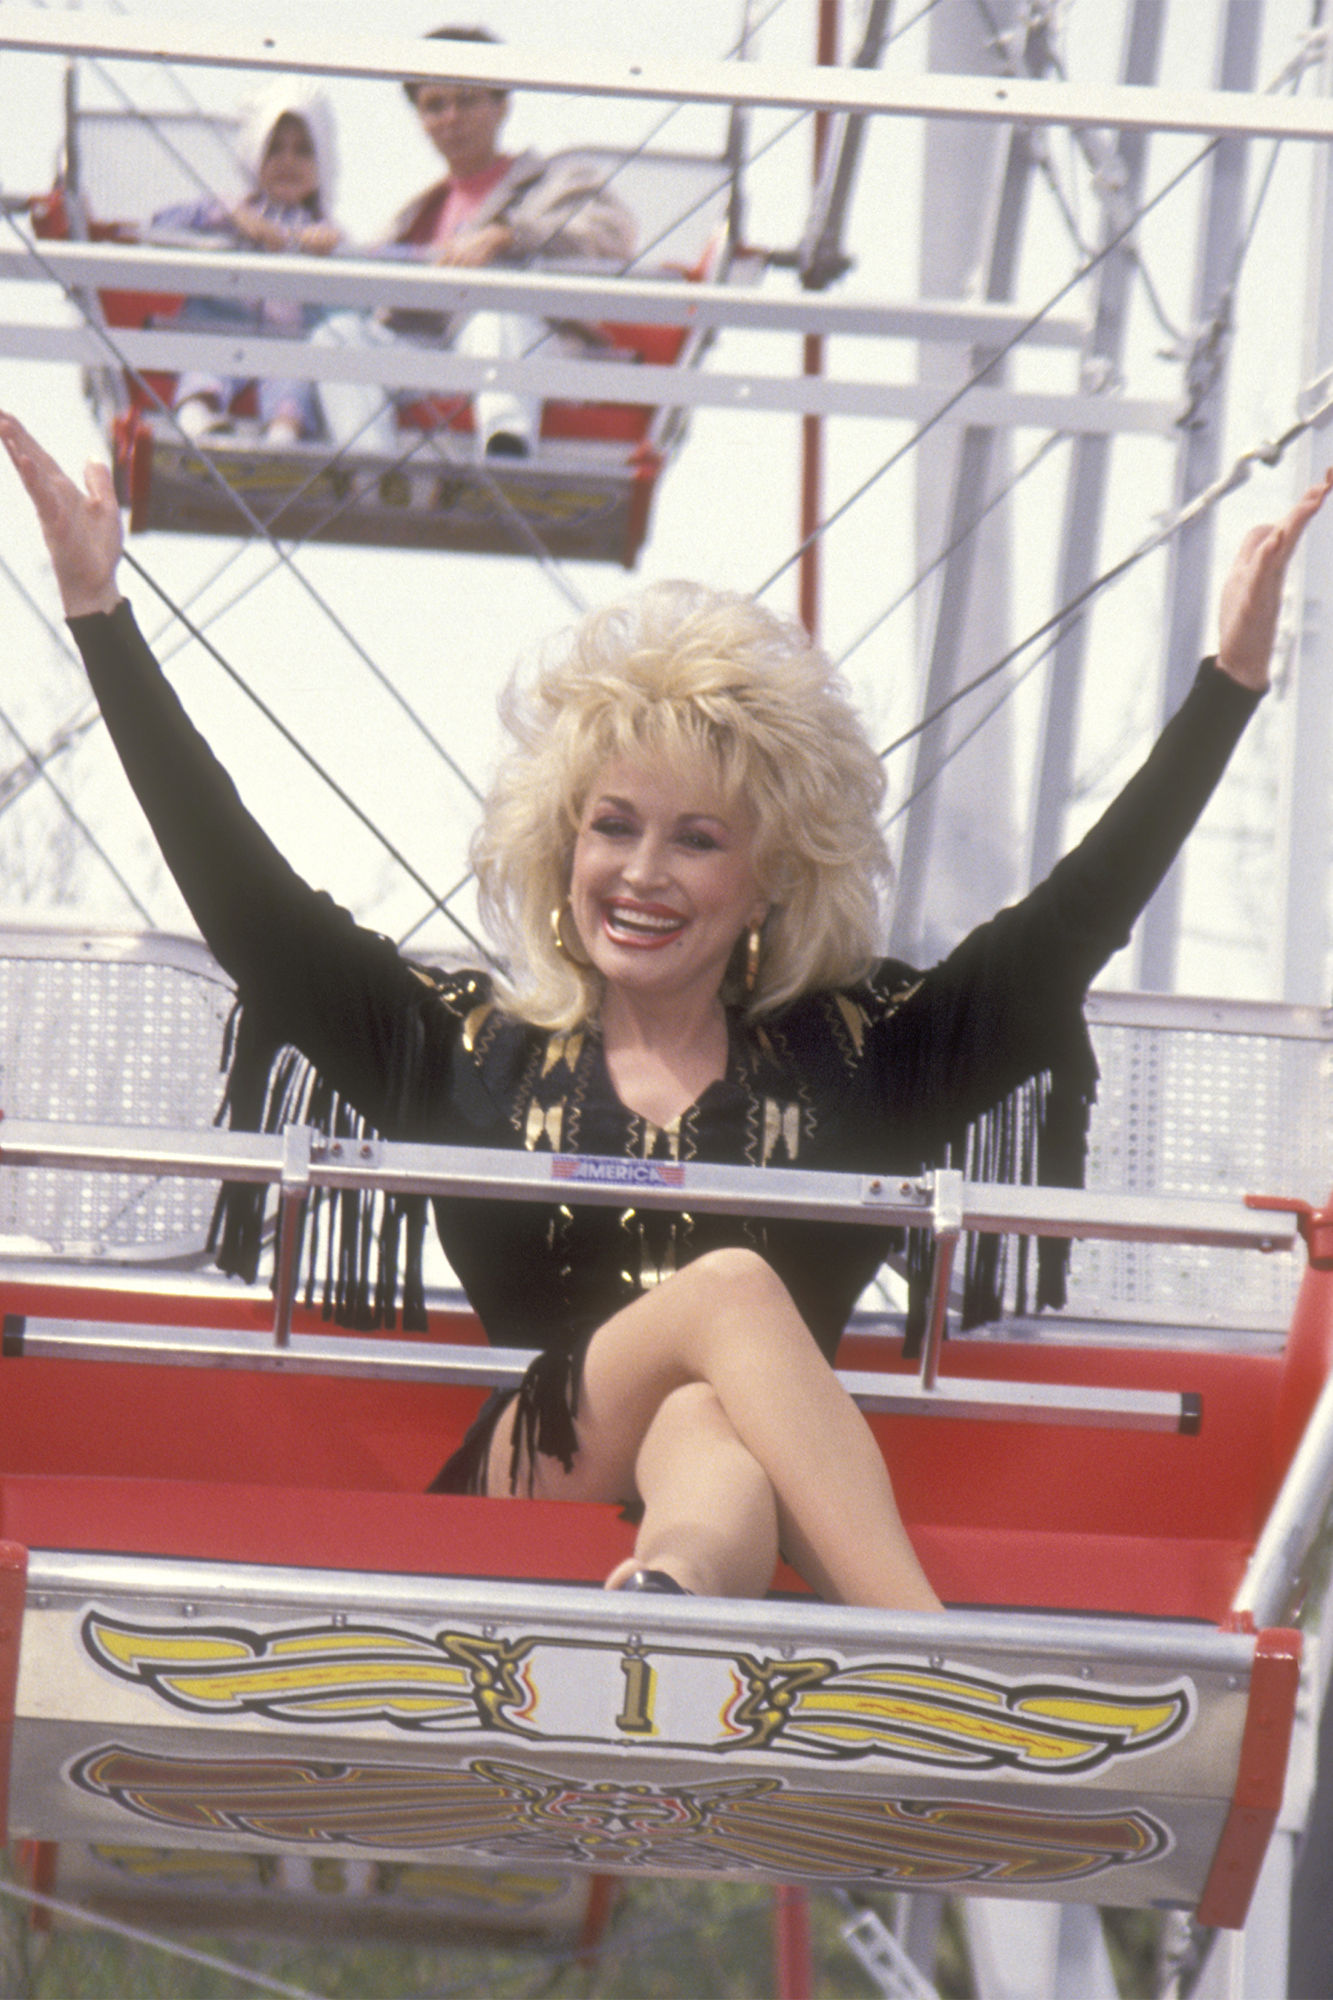 Dolly Parton Announces a Major Expansion to Dollywood with 11 New Attractions